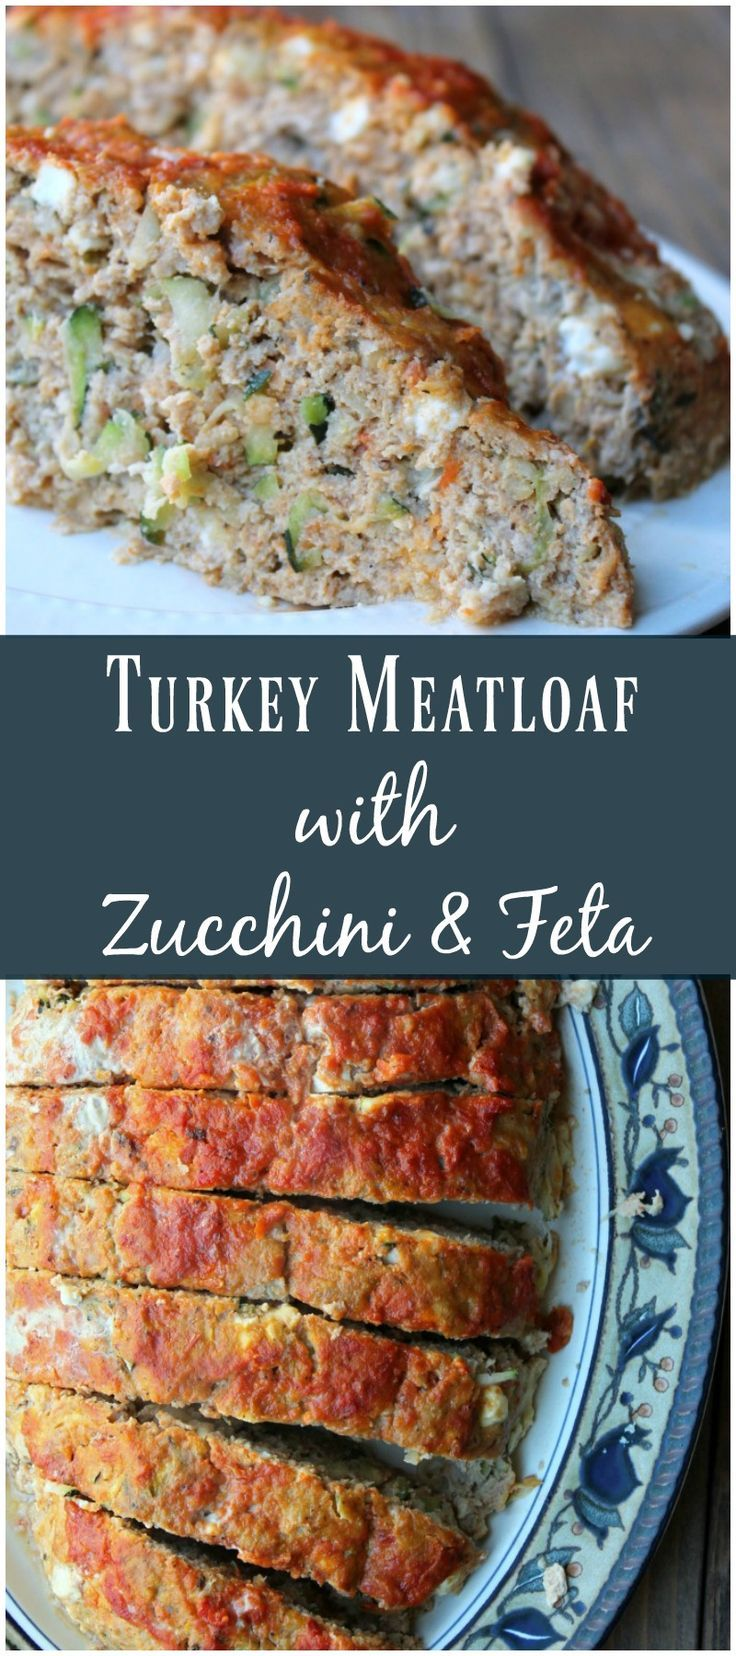 Turkey Meatloaf with Zucchini and Feta. Delicious make-ahead recipe. Healthy freezer meal.